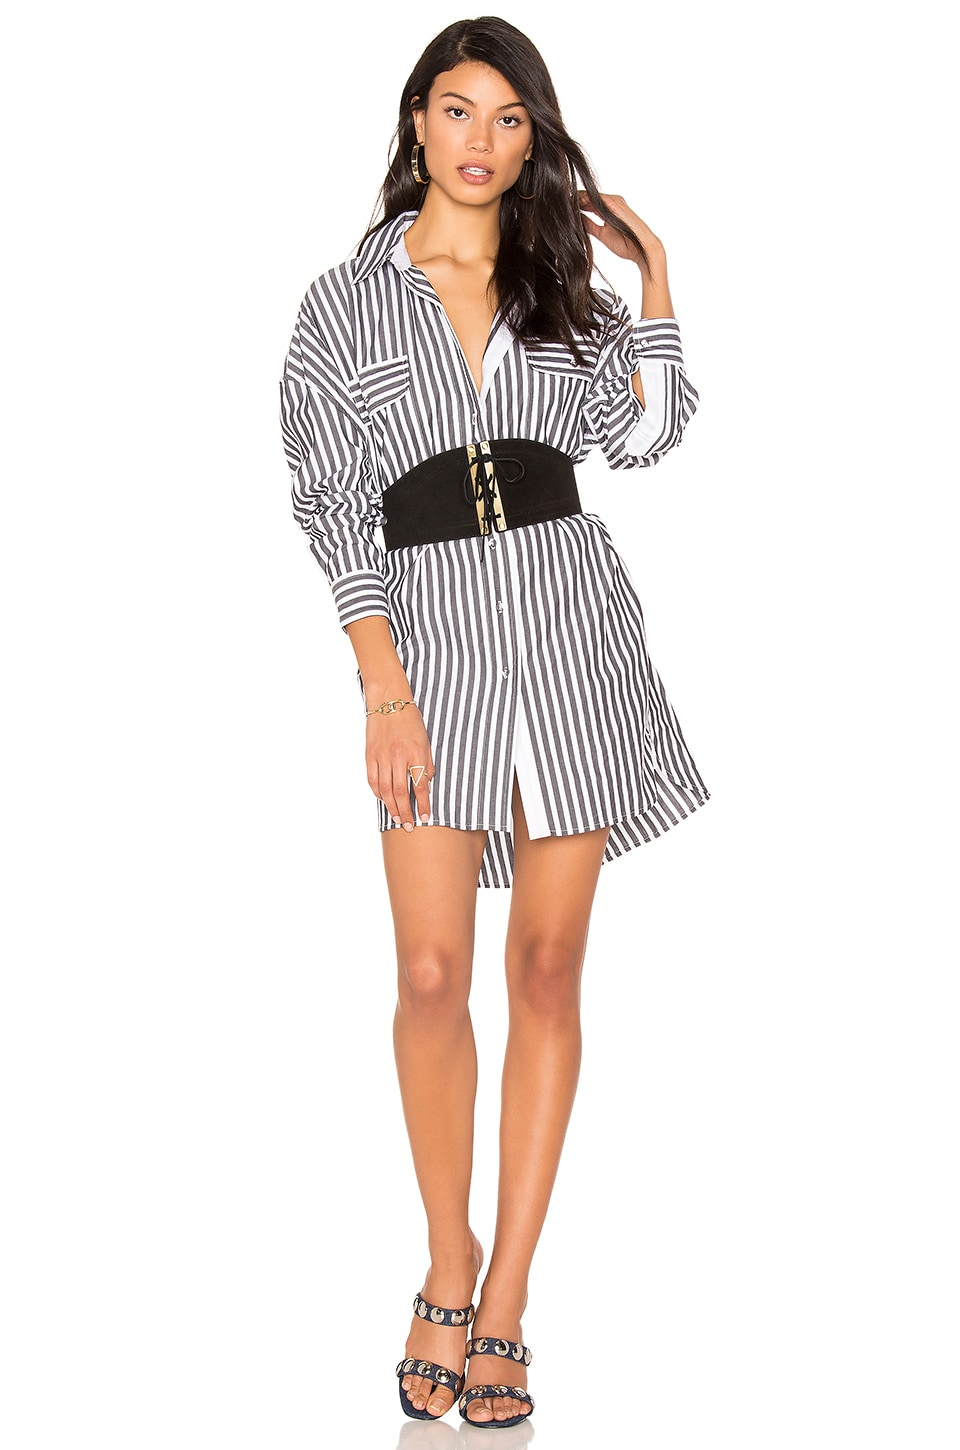 Oversized Button Up by KENDALL + KYLIE